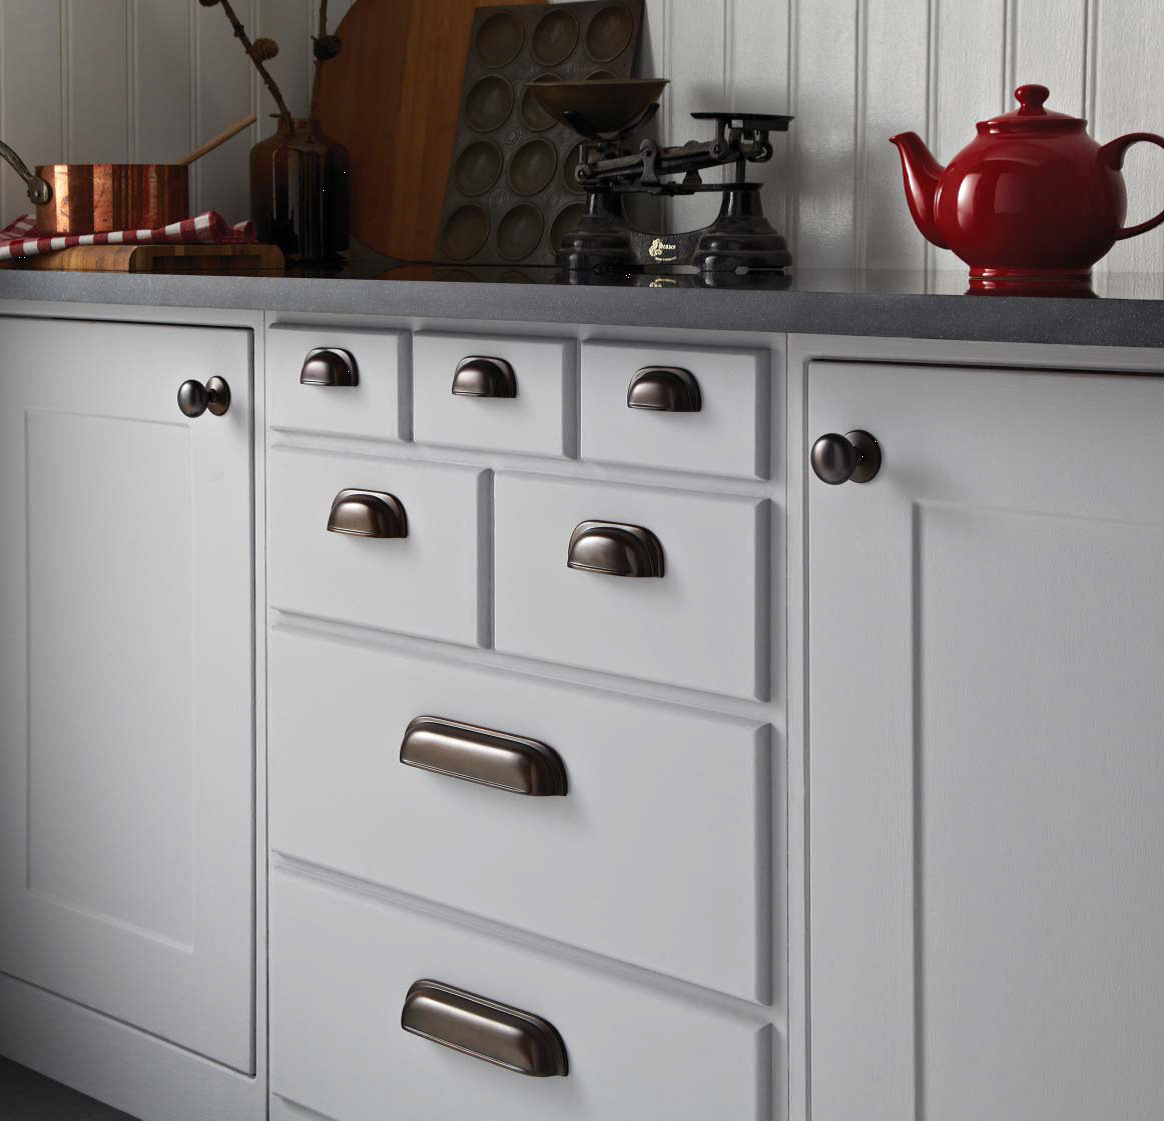 Kitchen Door Handles and Knobs | Oakhurst Interiors